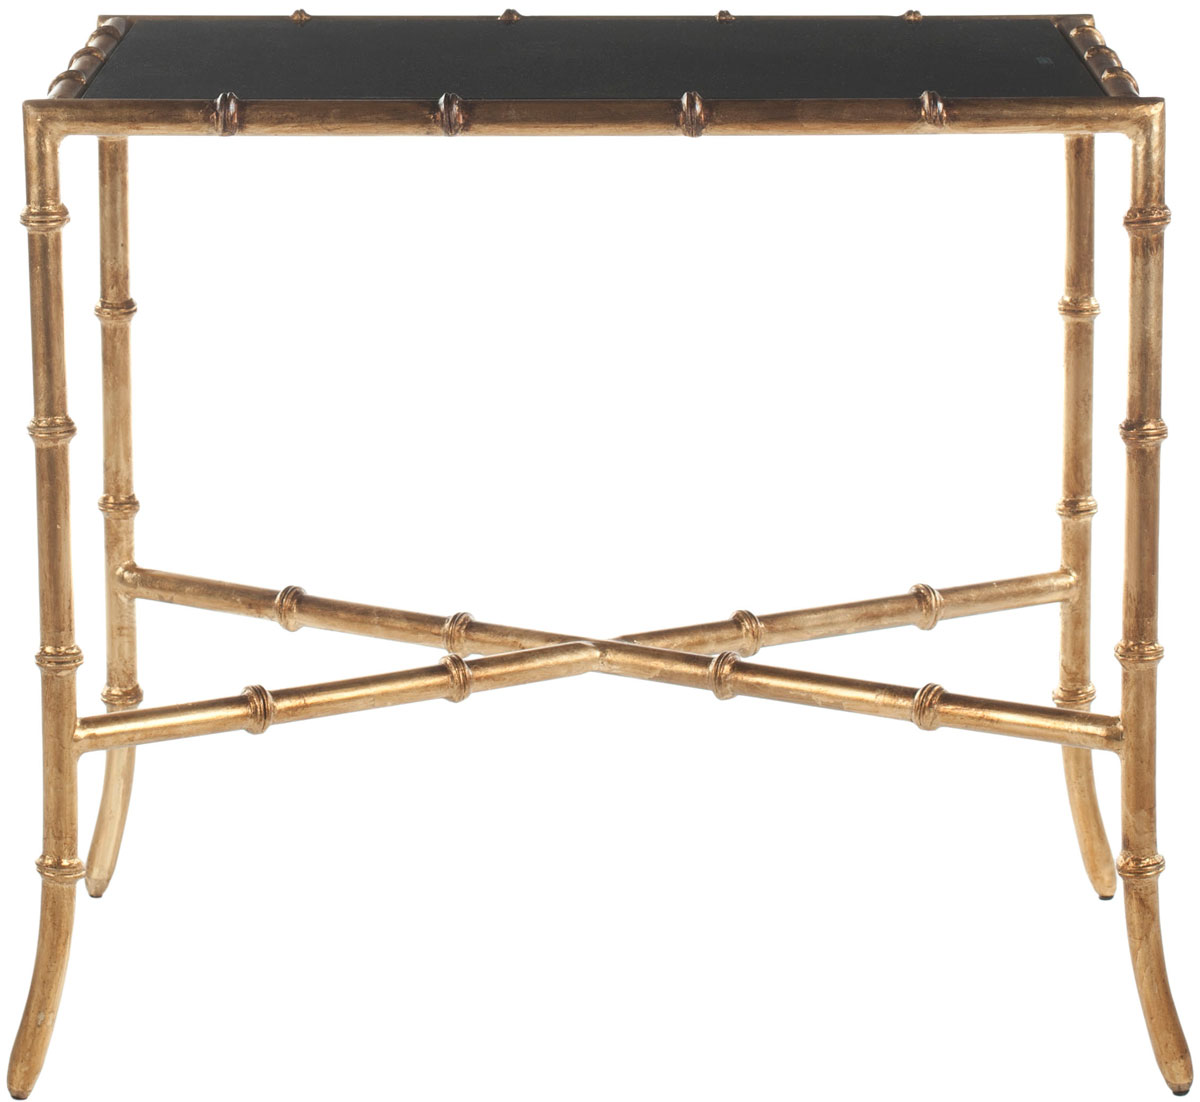 Santiago Modern Burnished Brass Drum Coffee Table: FOX2513B Accent Tables